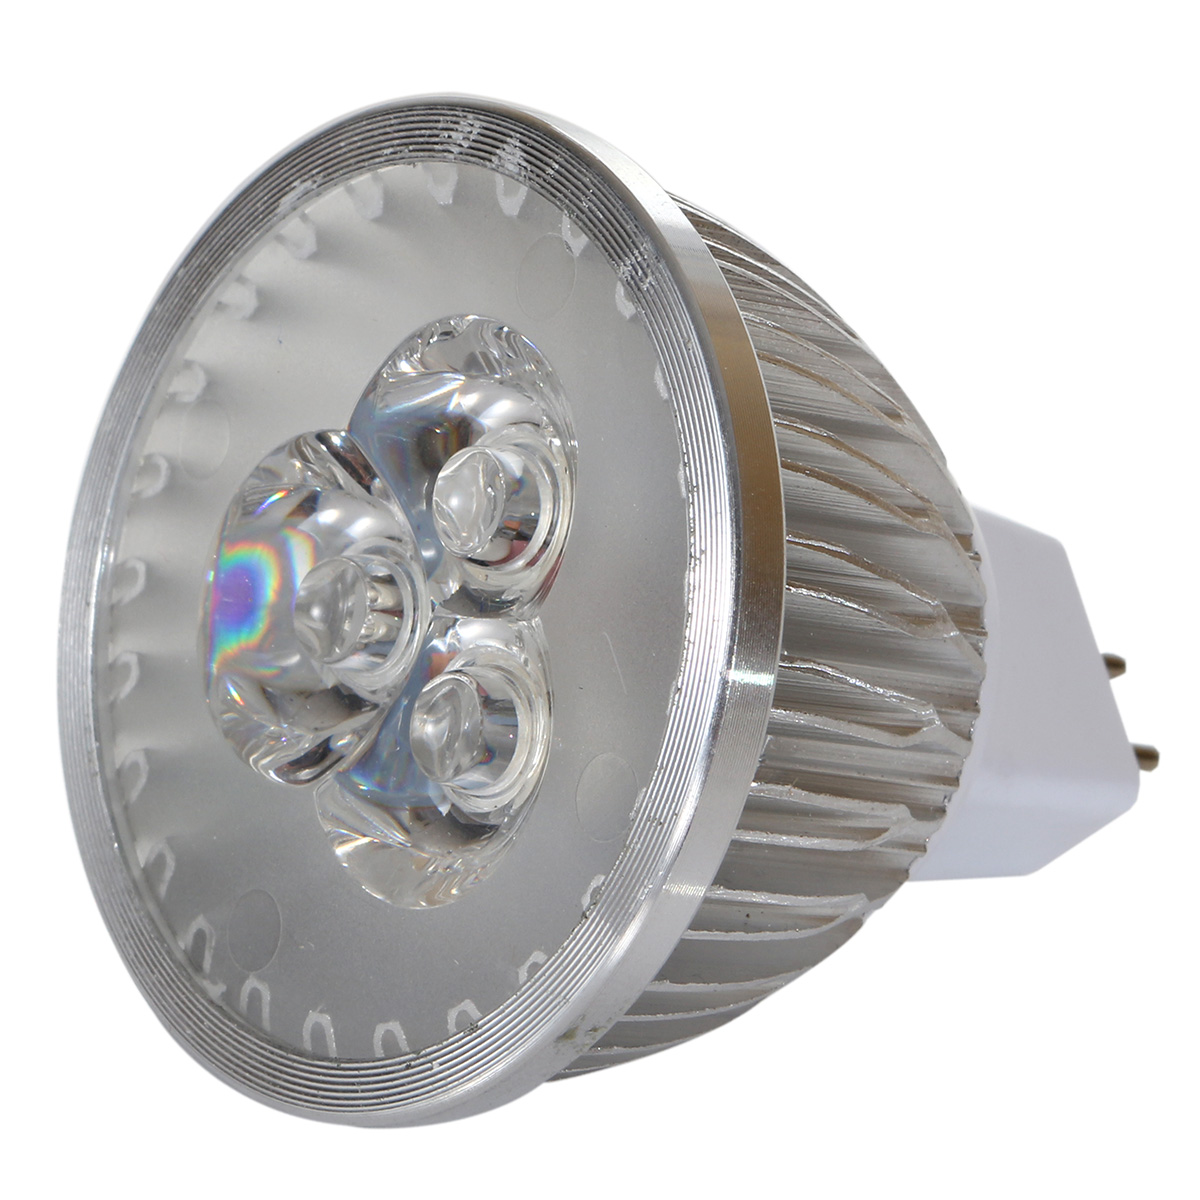 gu10 mr16 e14 e27 9w led energy saving spot light spotlight downlight bulb lamp ebay. Black Bedroom Furniture Sets. Home Design Ideas